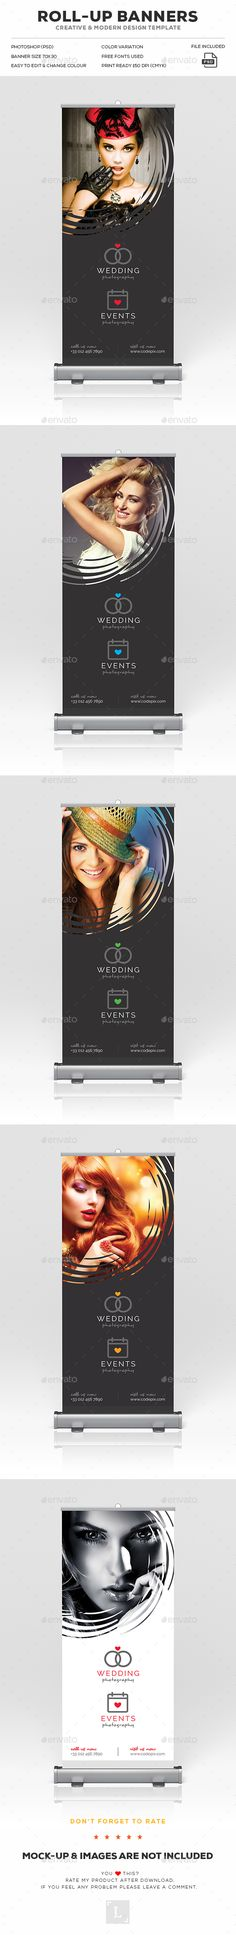 "Photography Roll-Up Banner by UXcred FILE INFORMATION:Easy customizable and editable 150 DPI CMYK Print Ready! Size 30""x70"".25"" in with bleed 100 Layered and Full Edi"